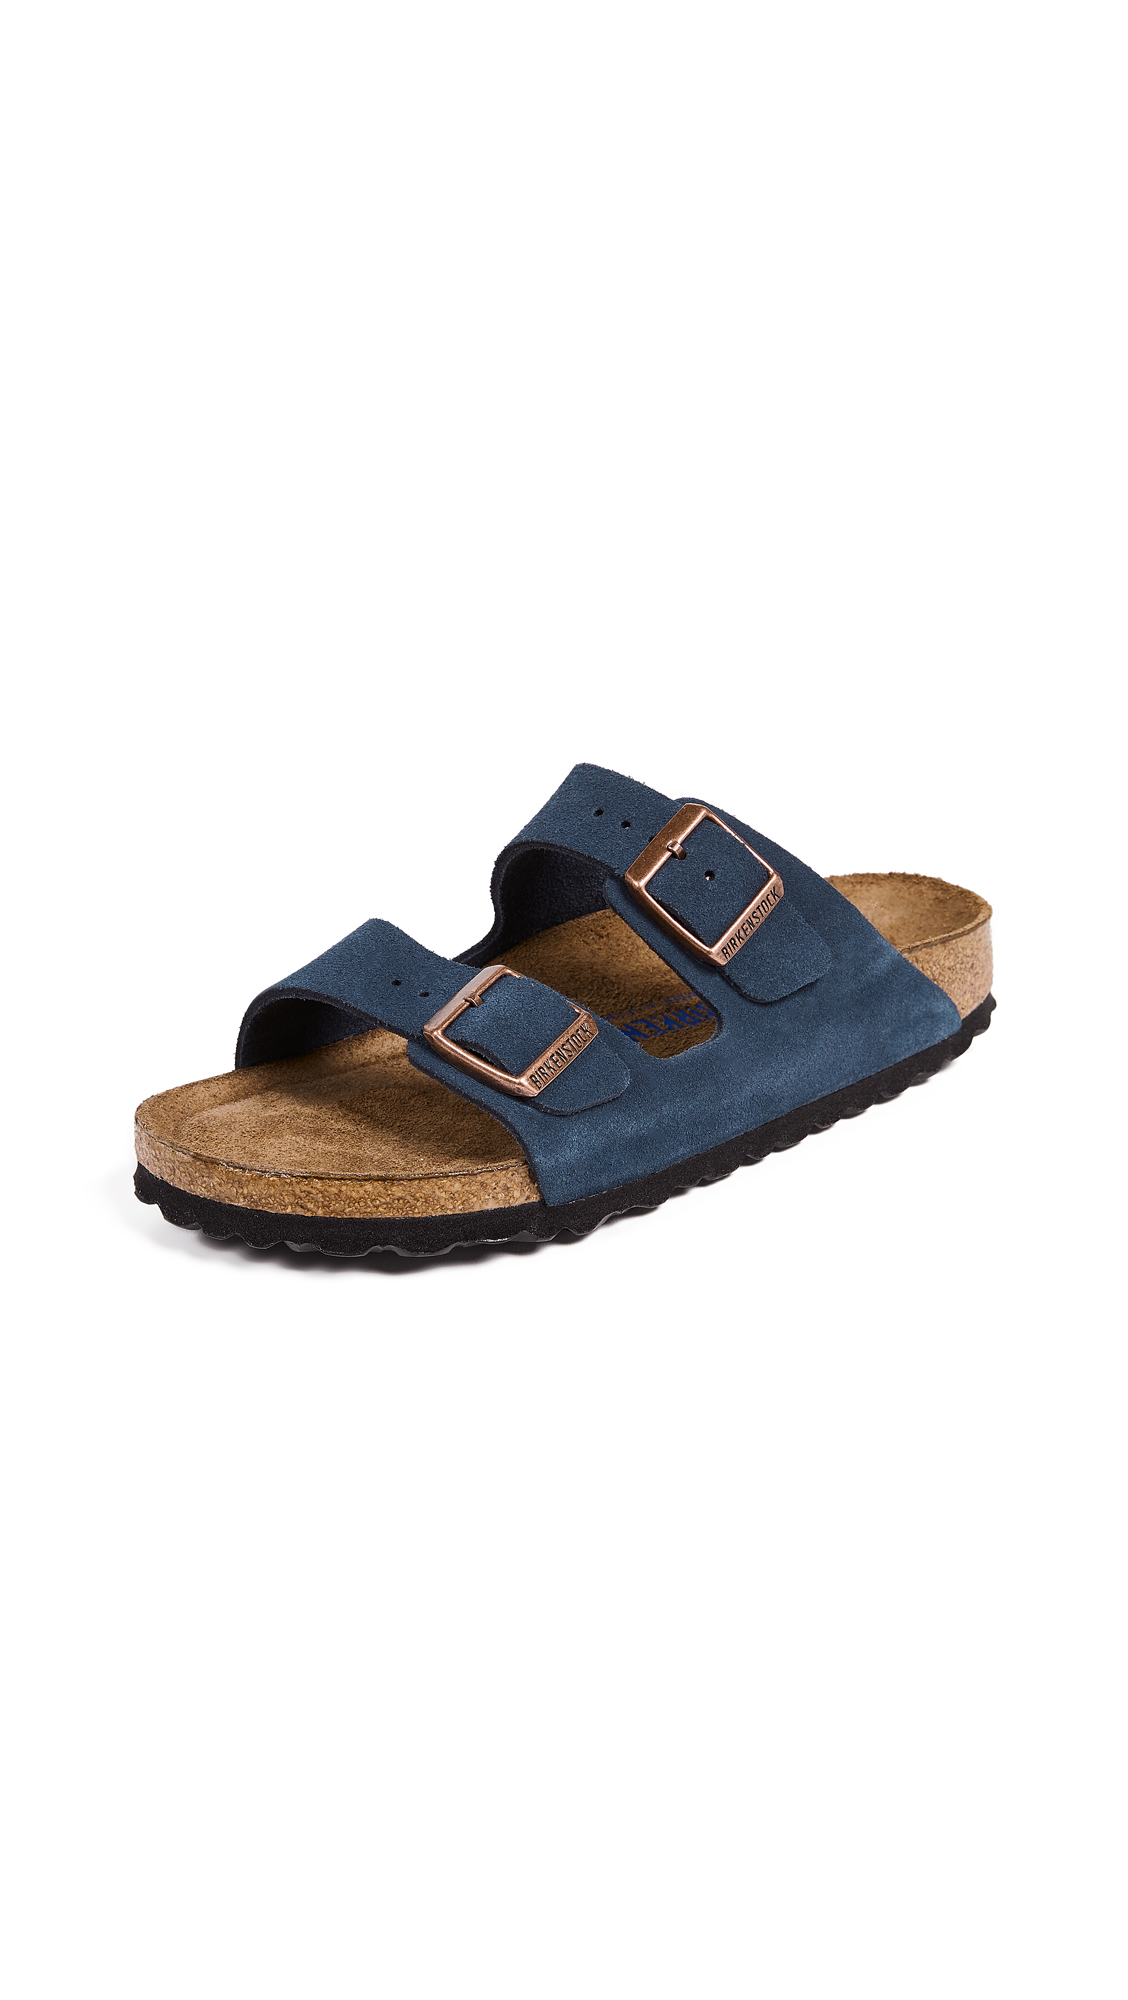 Birkenstock Arizona SFB Sandals - Navy